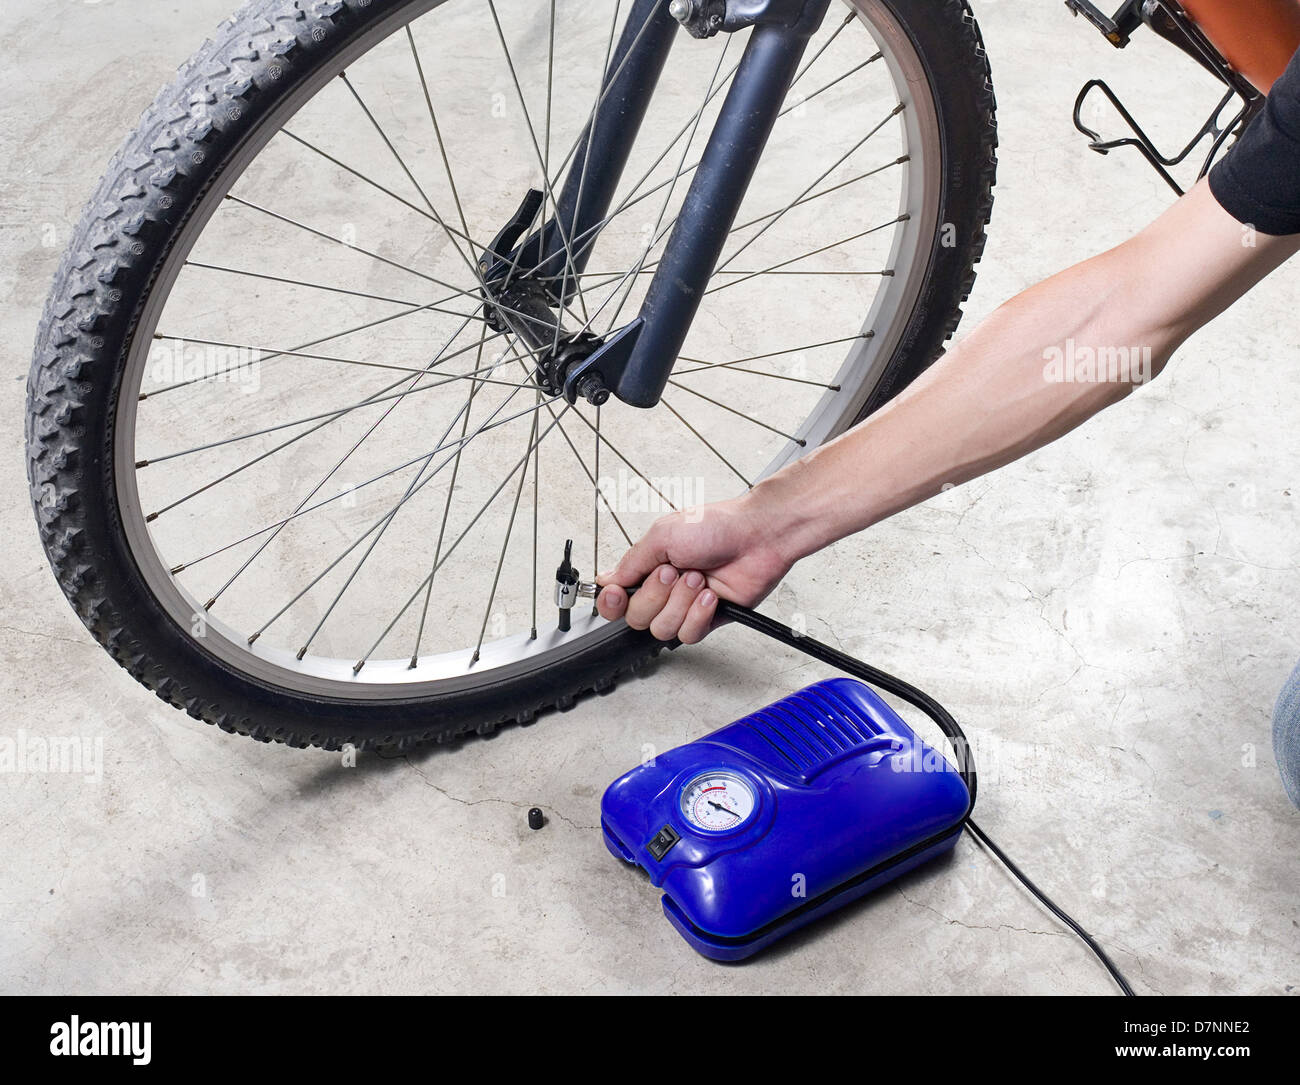 Inflate The Bicycle Tire With Compact Air Compressor Stock Photo